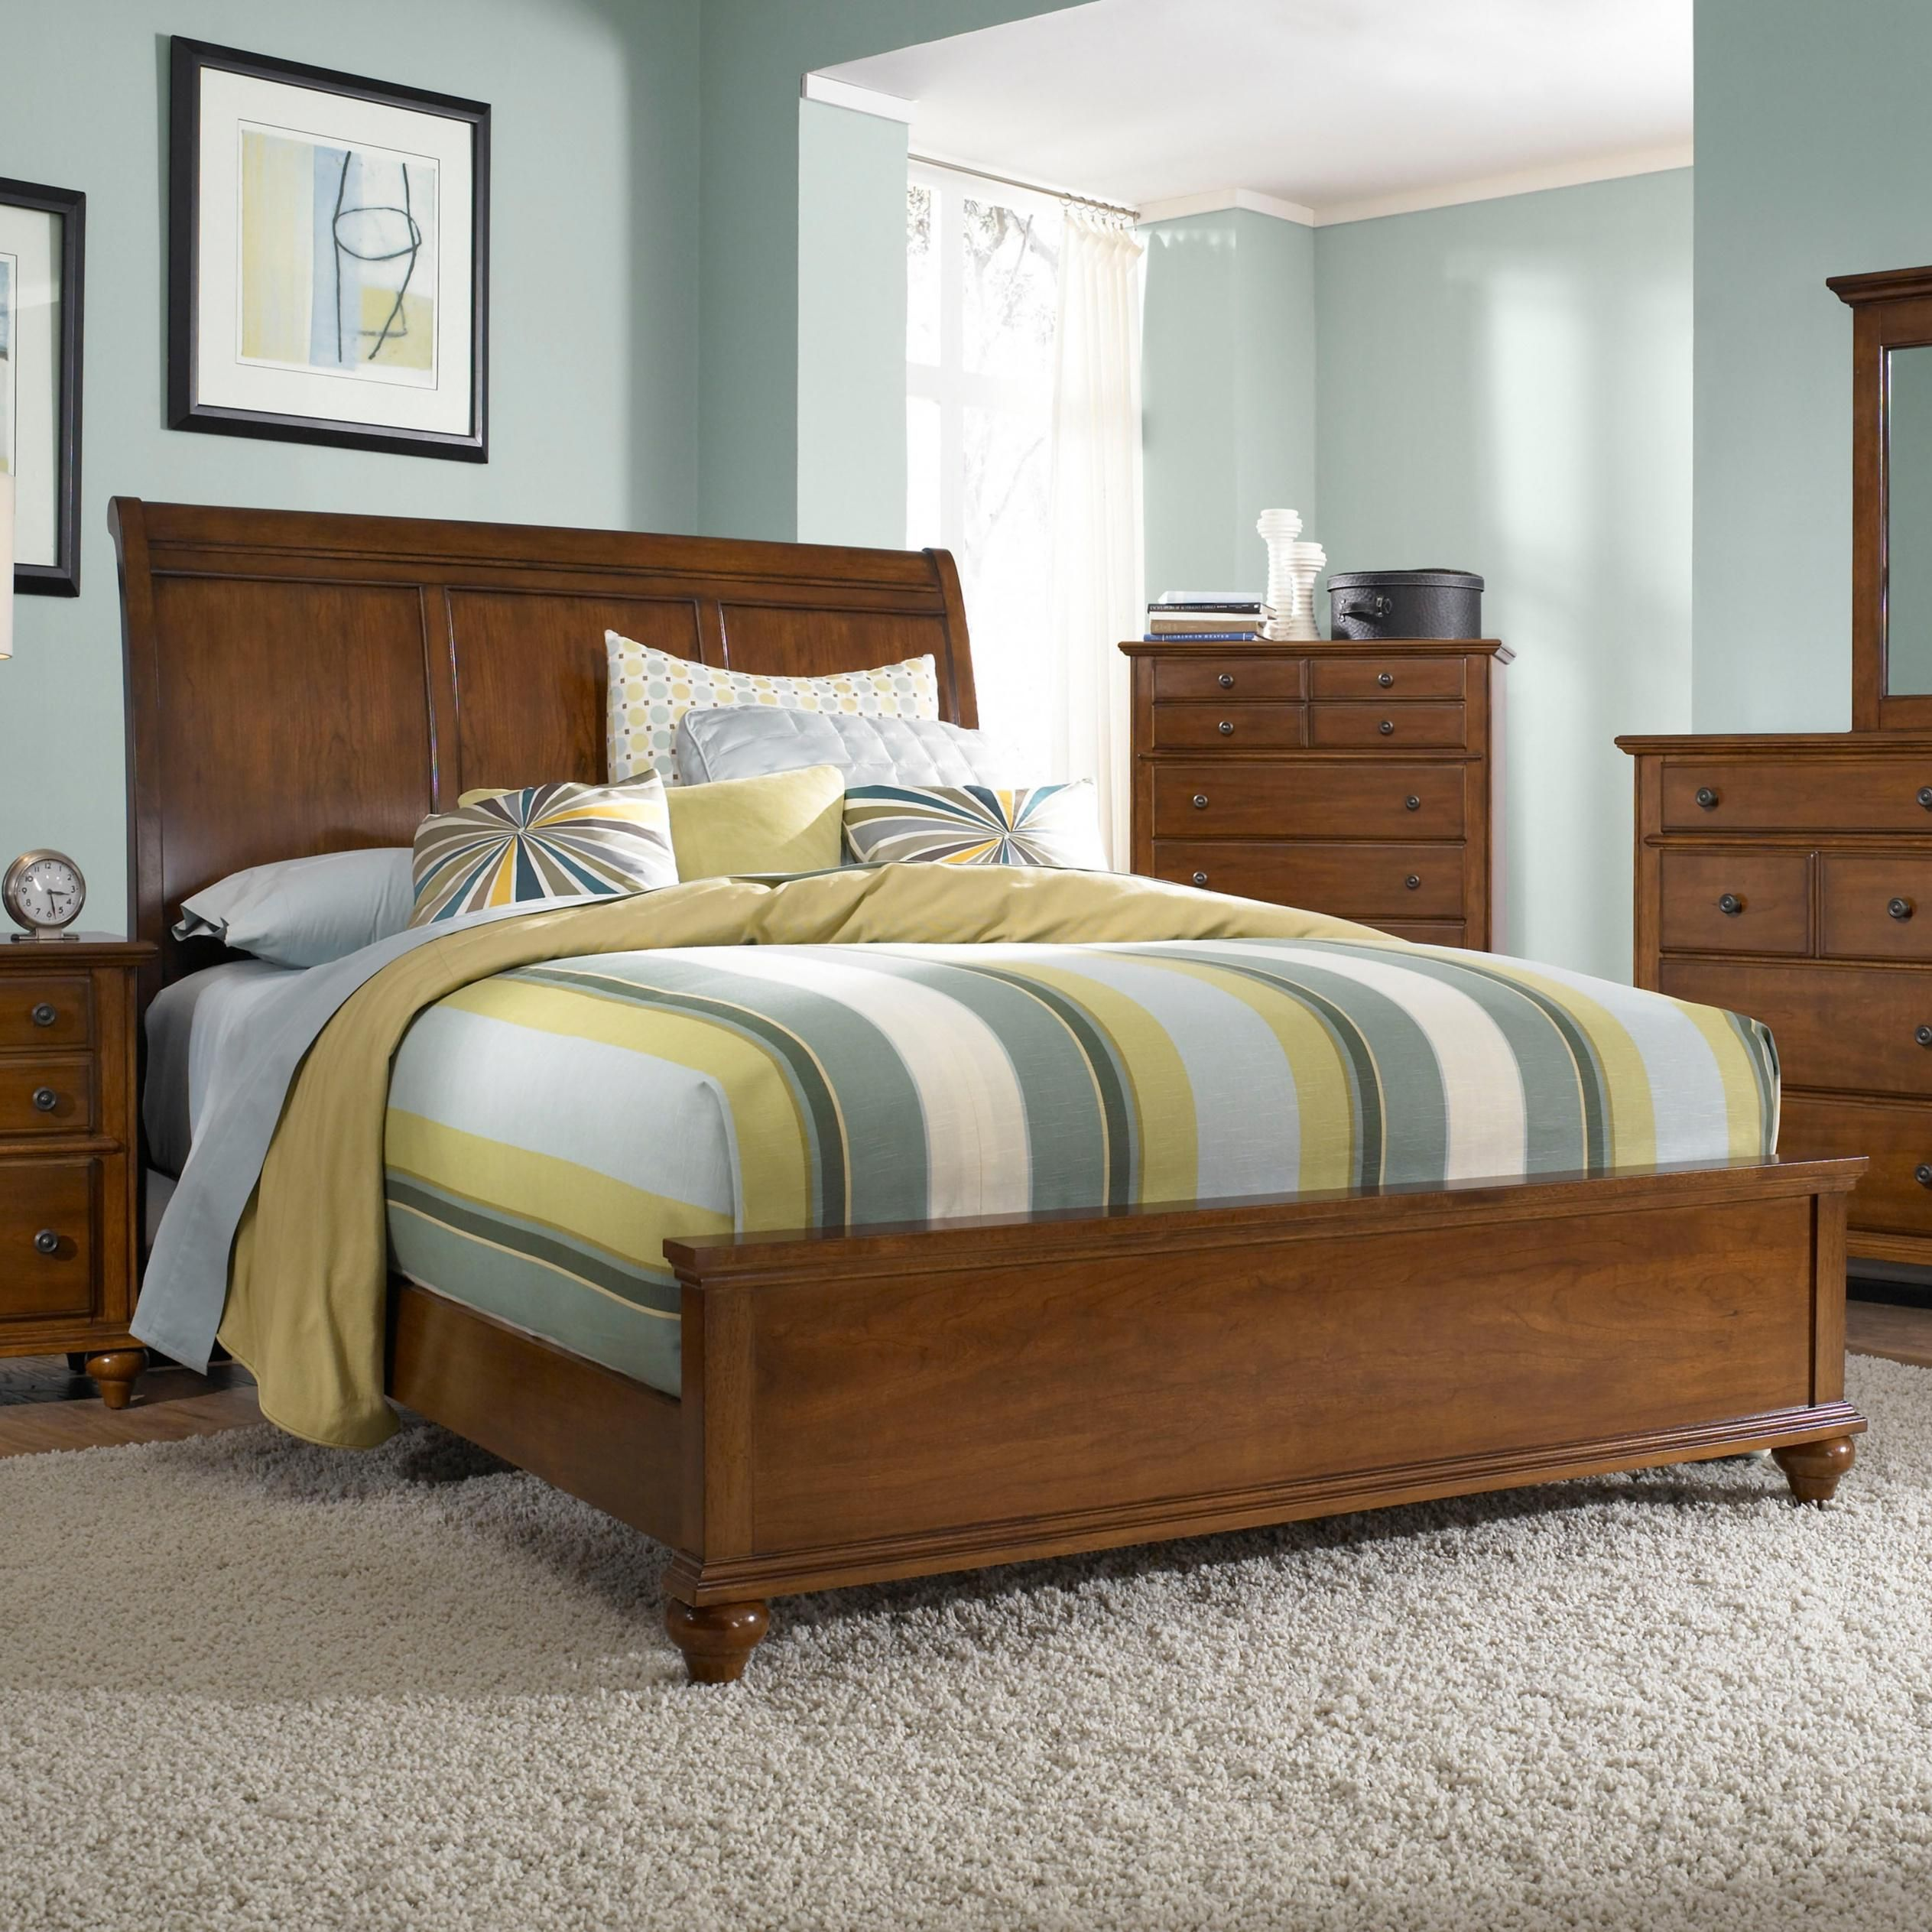 Hayden Place California King Bed with Sleigh Headboard and